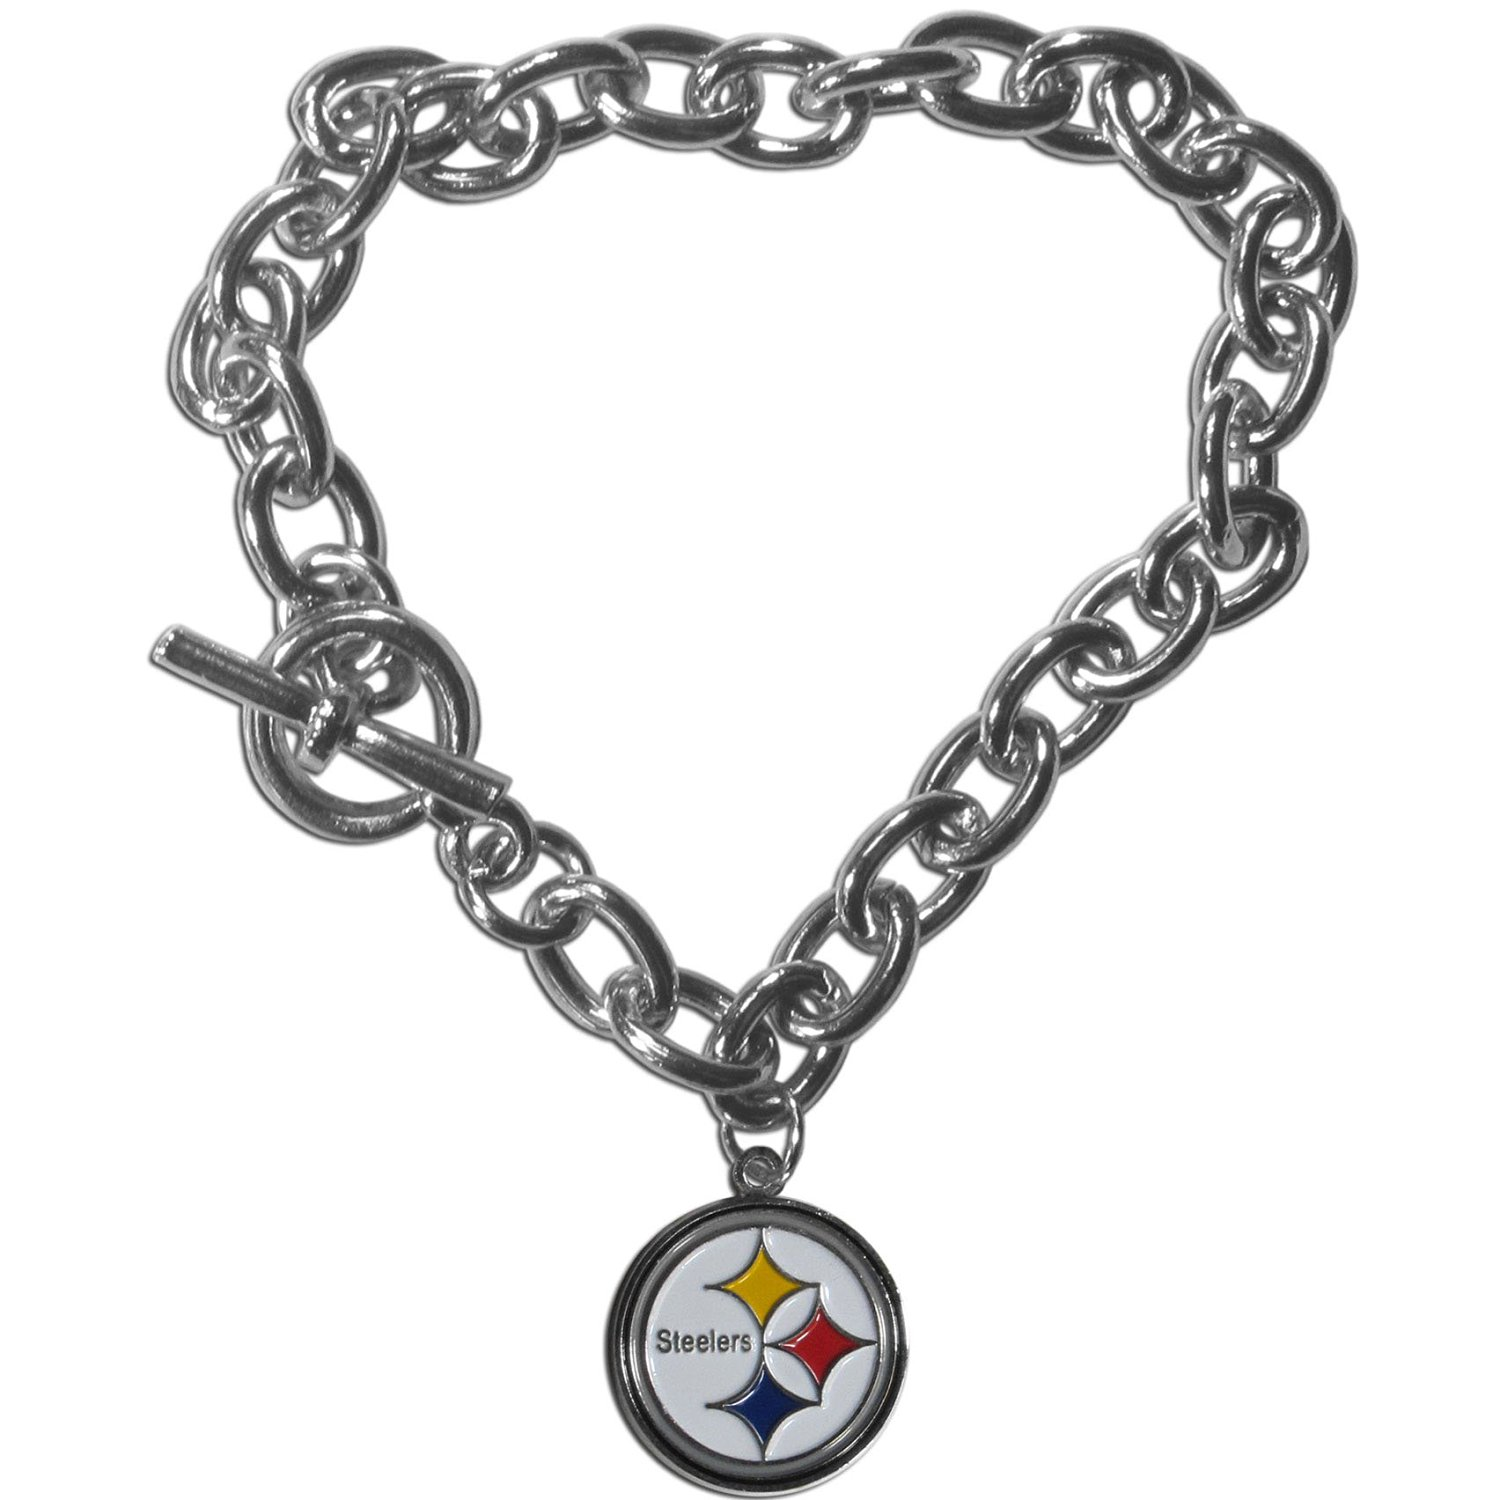 1160e3d2fc2 Get Quotations · Pittsburgh Steelers Charm Chain Bracelet